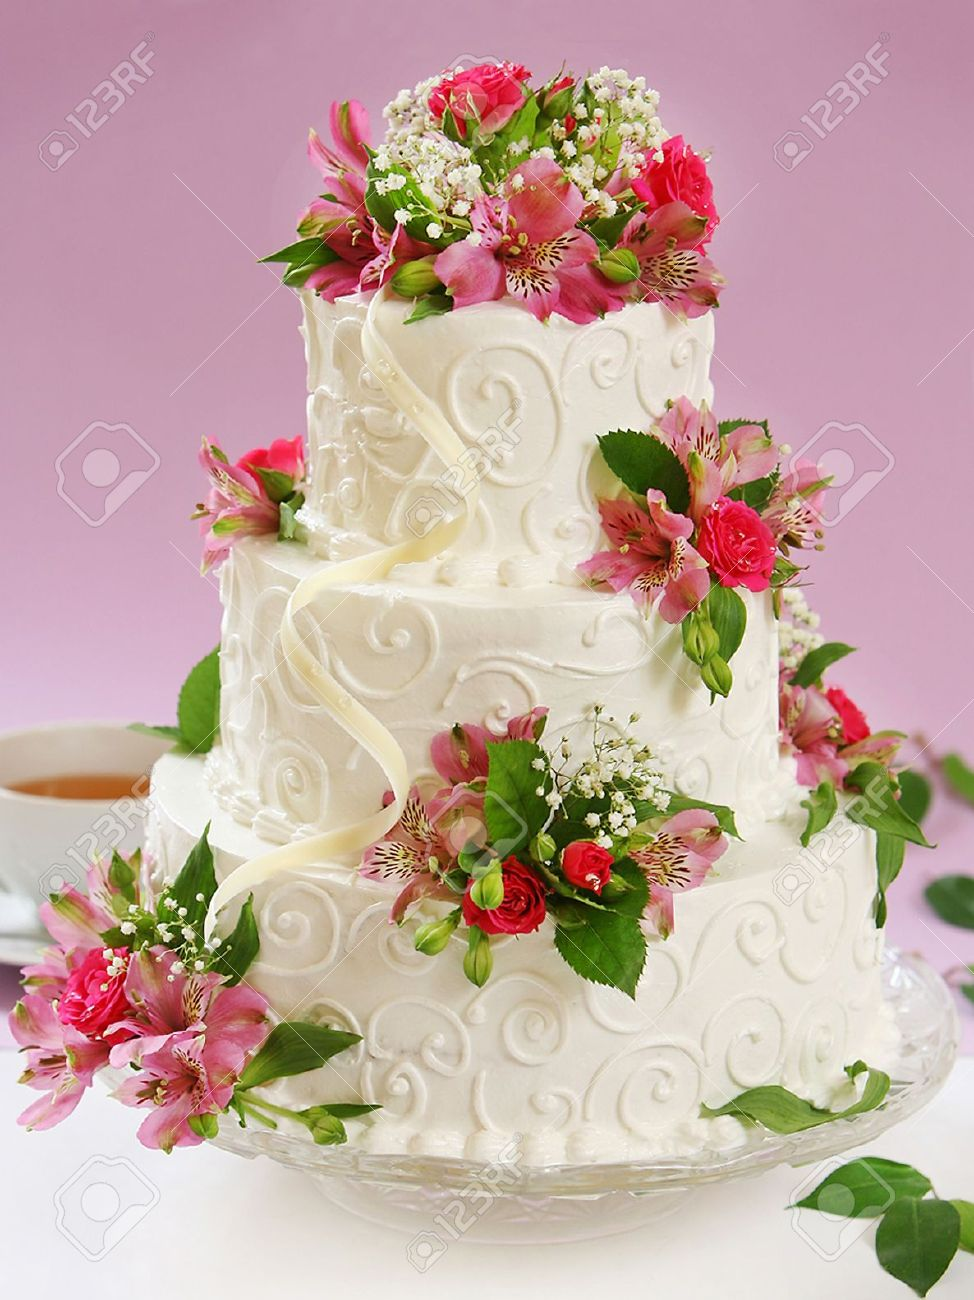 25 Best Cake Designs Ever  Page 15 of 34